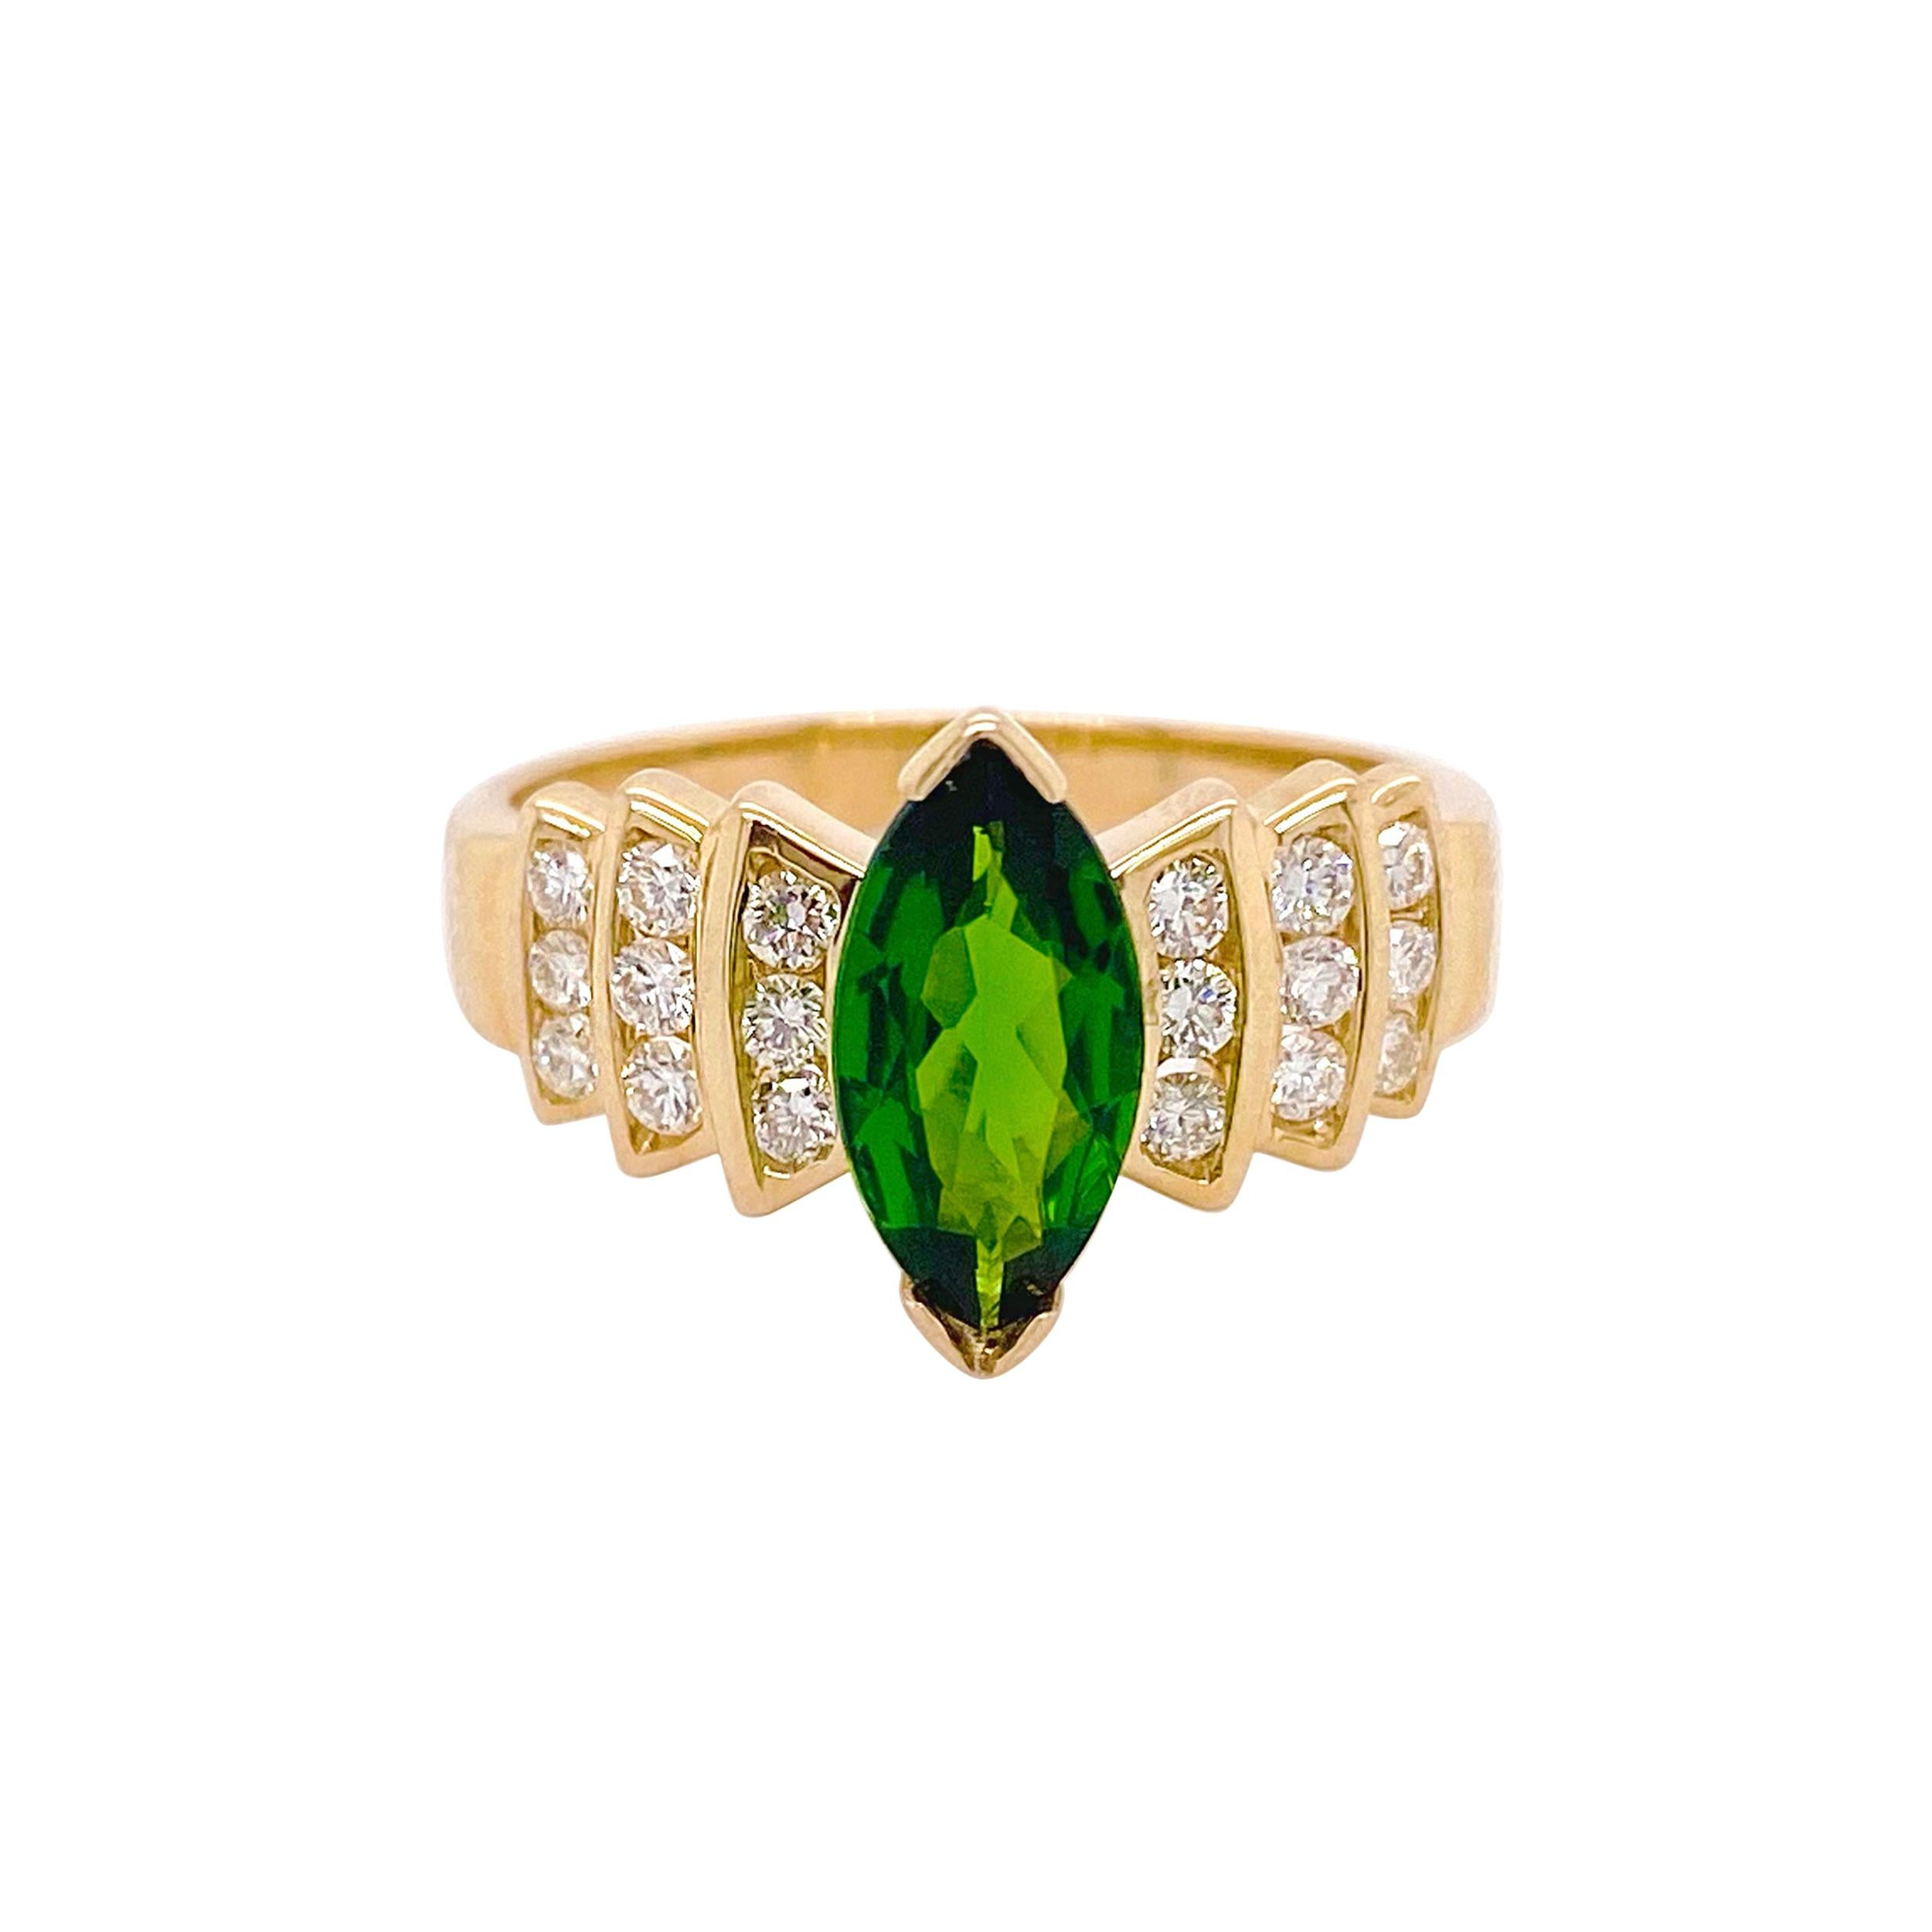 Russalite Diamond Ring, Yellow Gold, 1.10 Ct Marquise Cut Russalite, 18 Diamonds